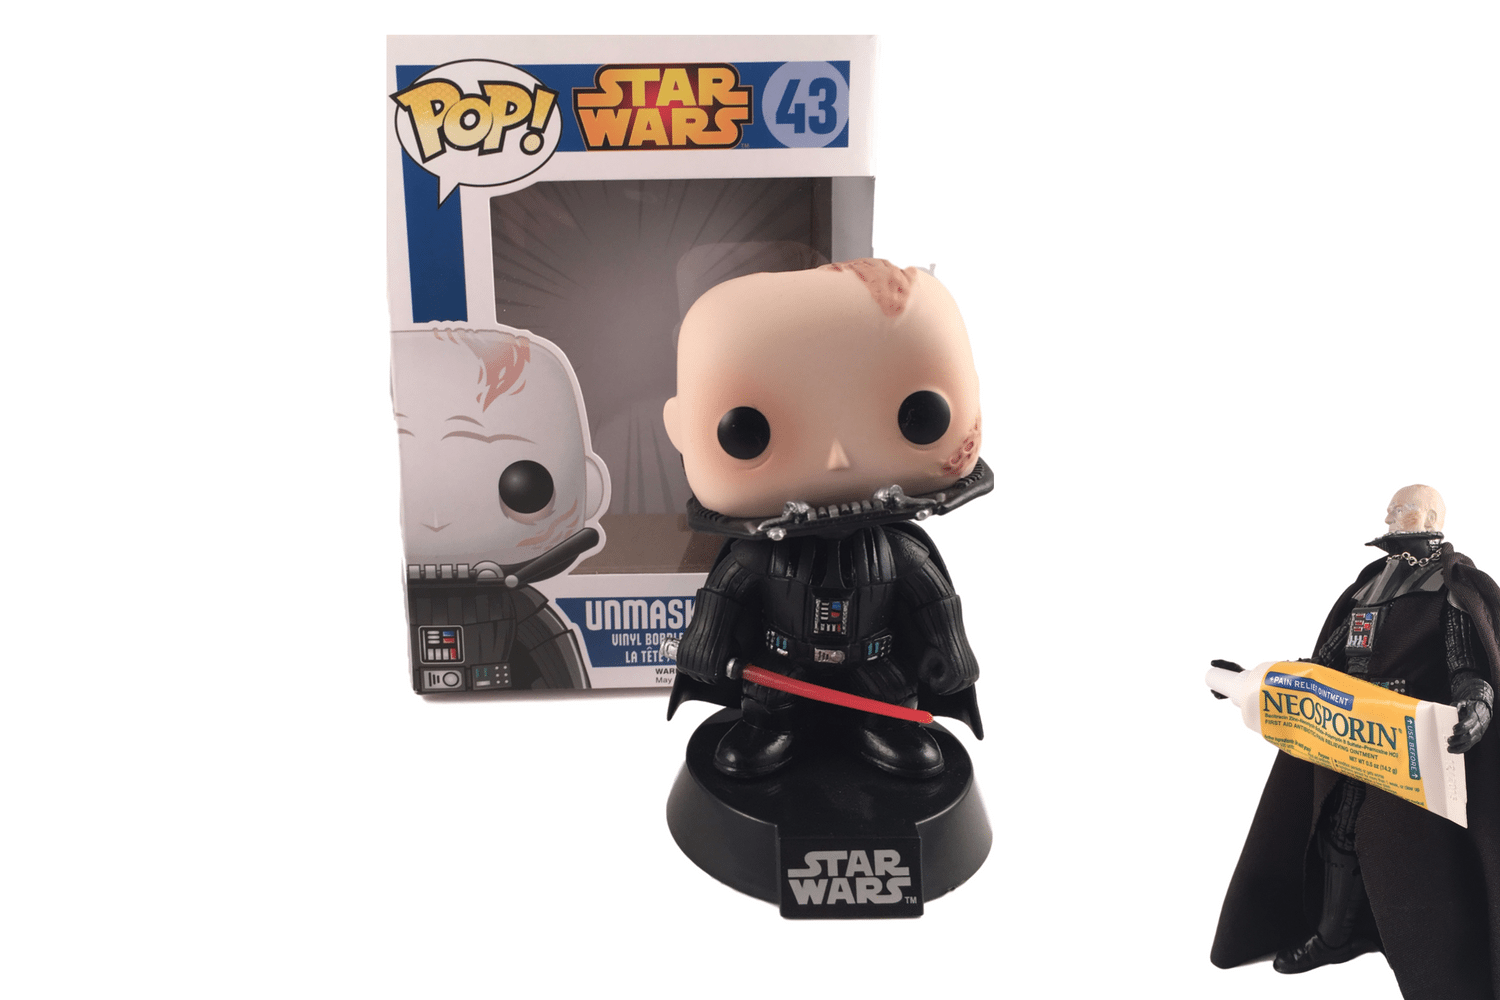 Humpty Dumpty sat on a wall...Unmasked Vader is a Pop for all.